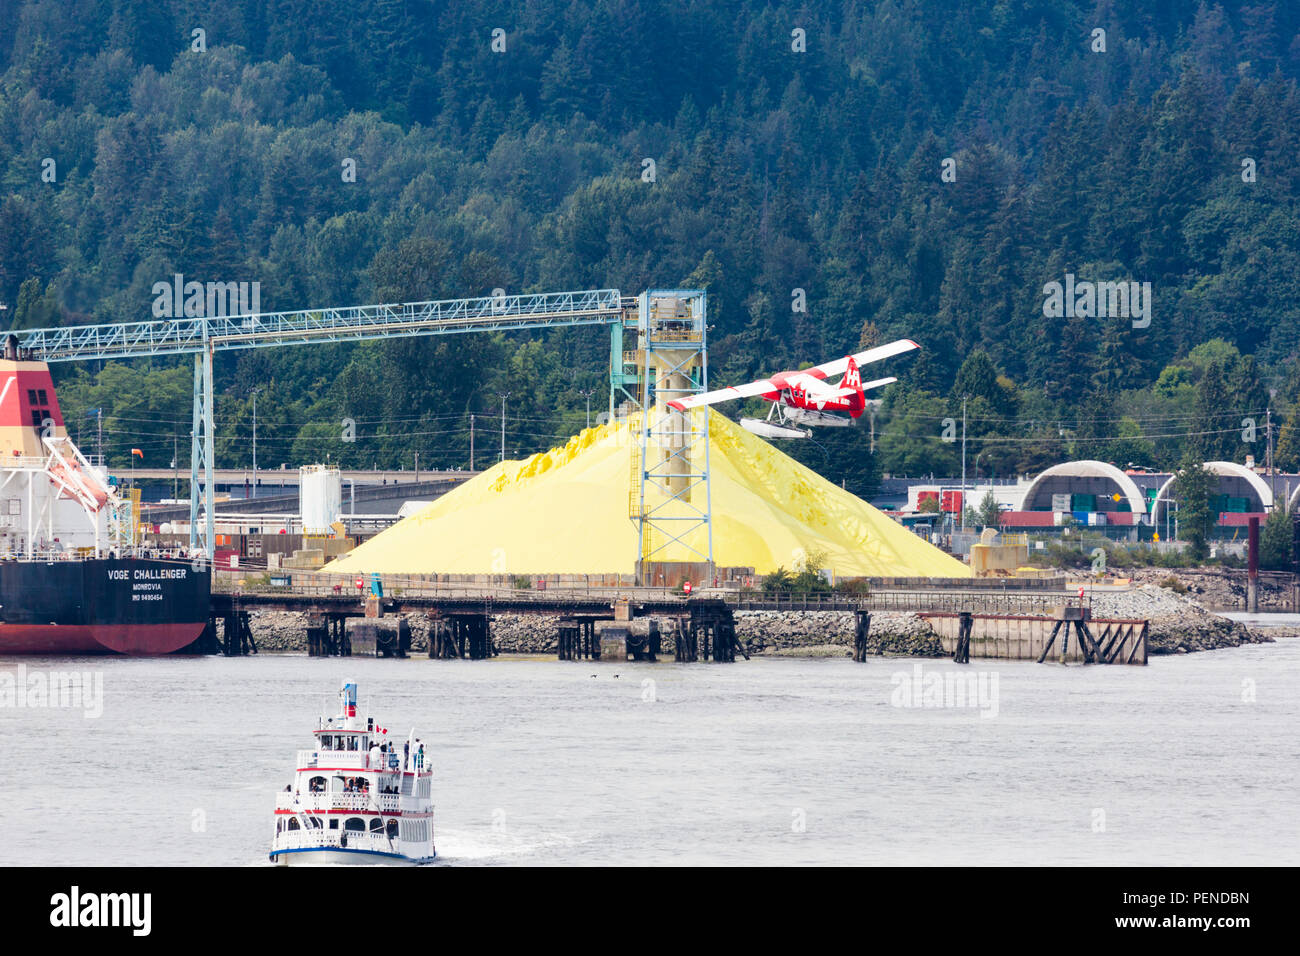 A tourist seaplane taking off in quite close proximity to the pile of sulphur in the harbour at North Vancouver, British Columbia, Canada - Stock Image